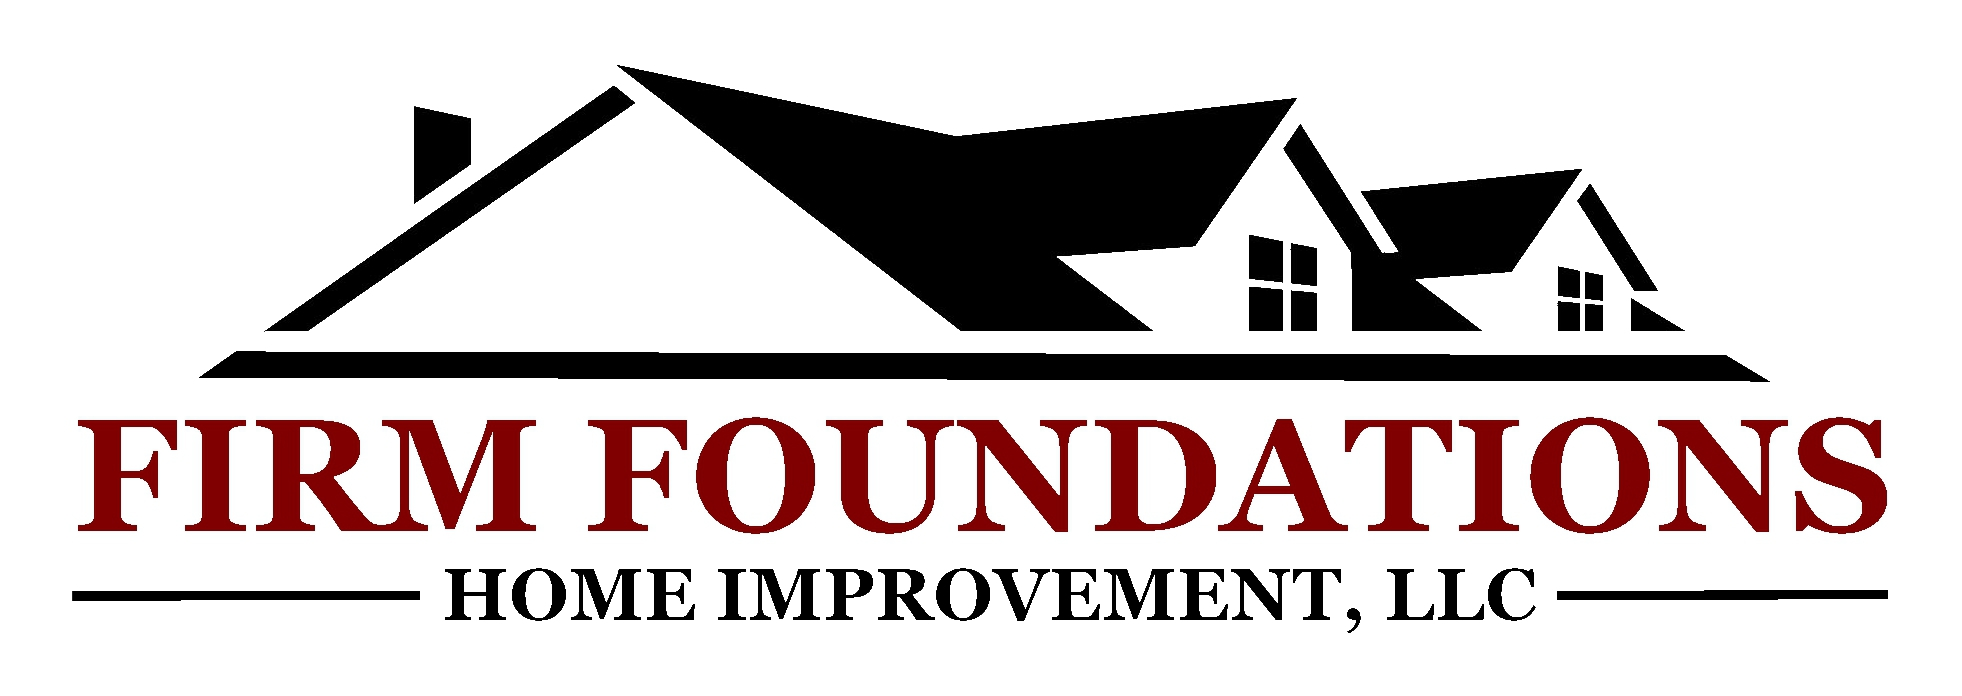 Firm Foundations Home Improvement Logo